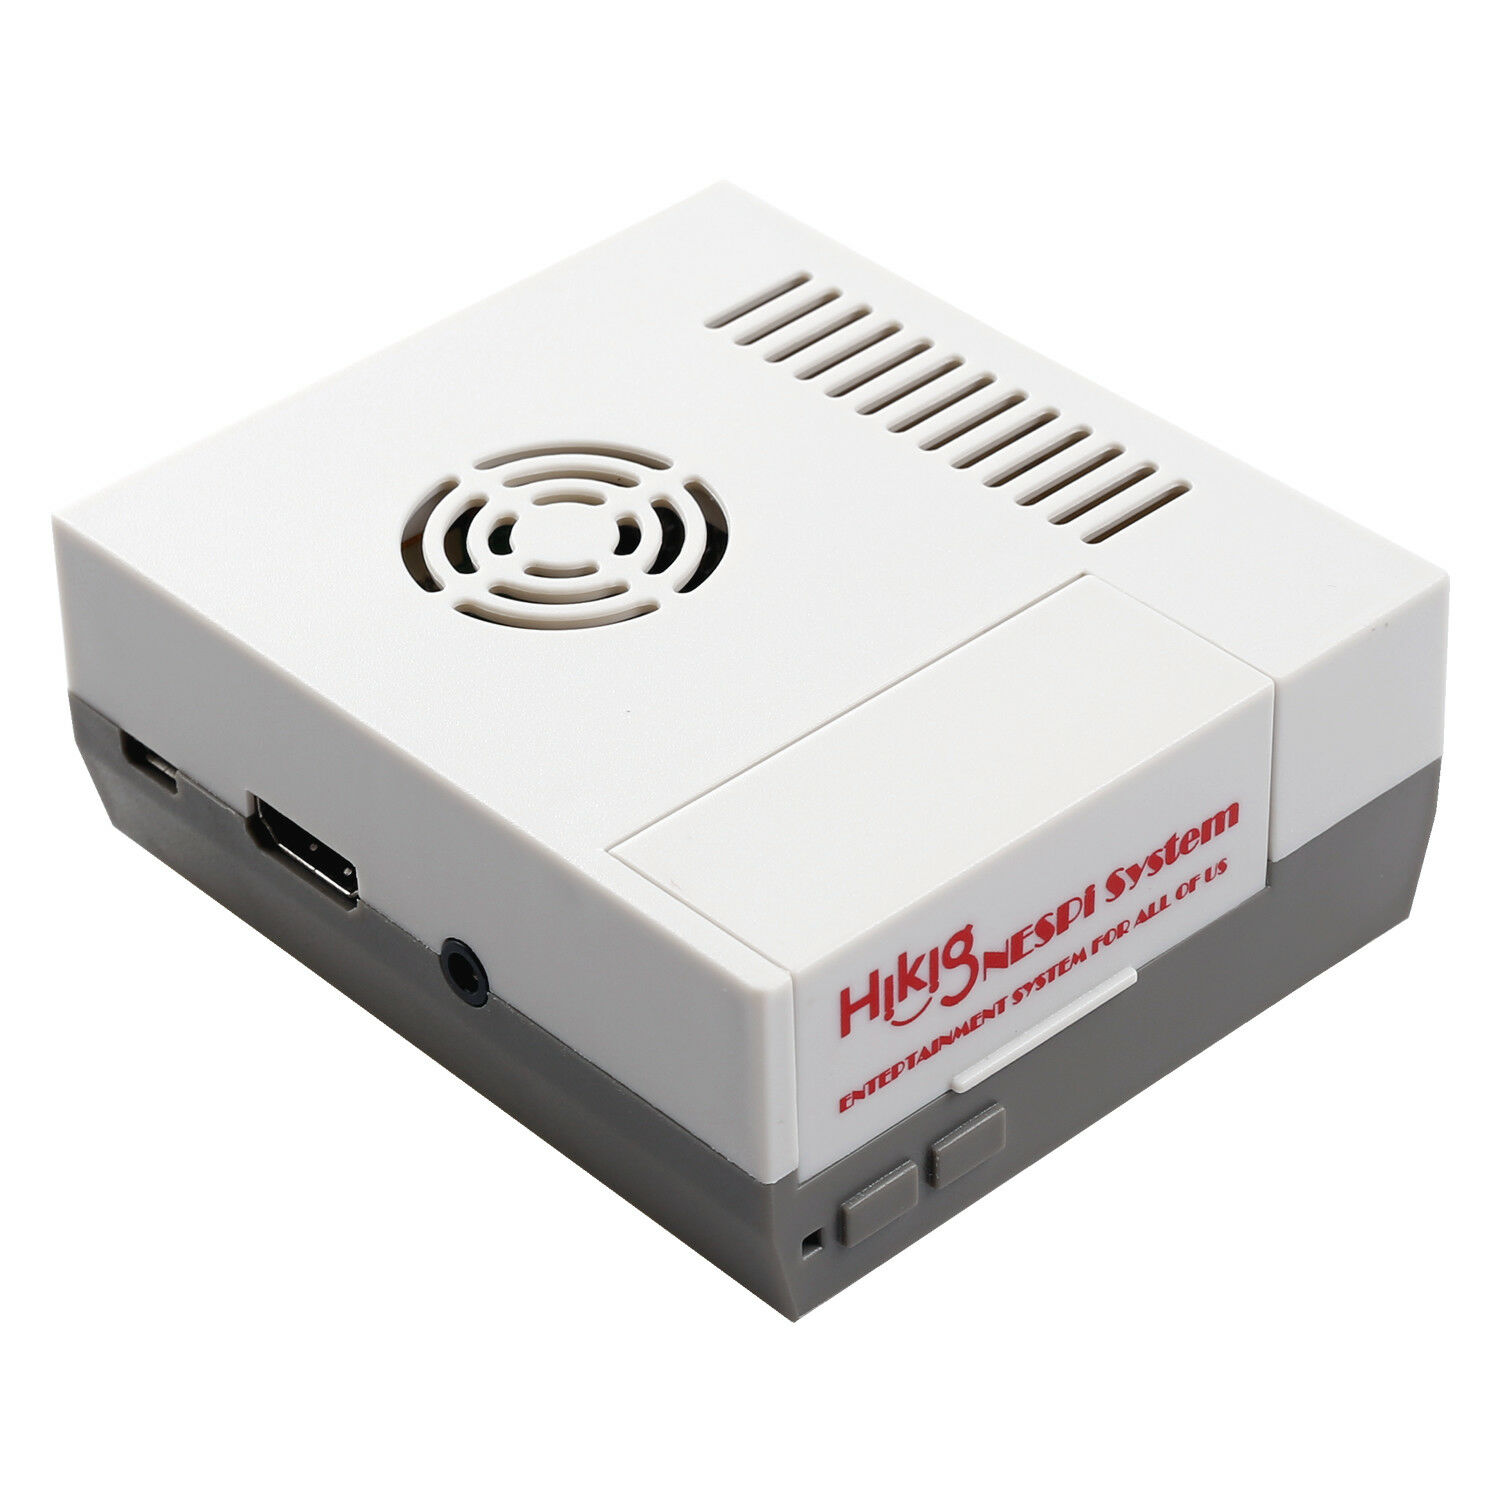 New NES Case for Raspberry Pi 3 B+,3b, 2b & 1 Model B+ Retro